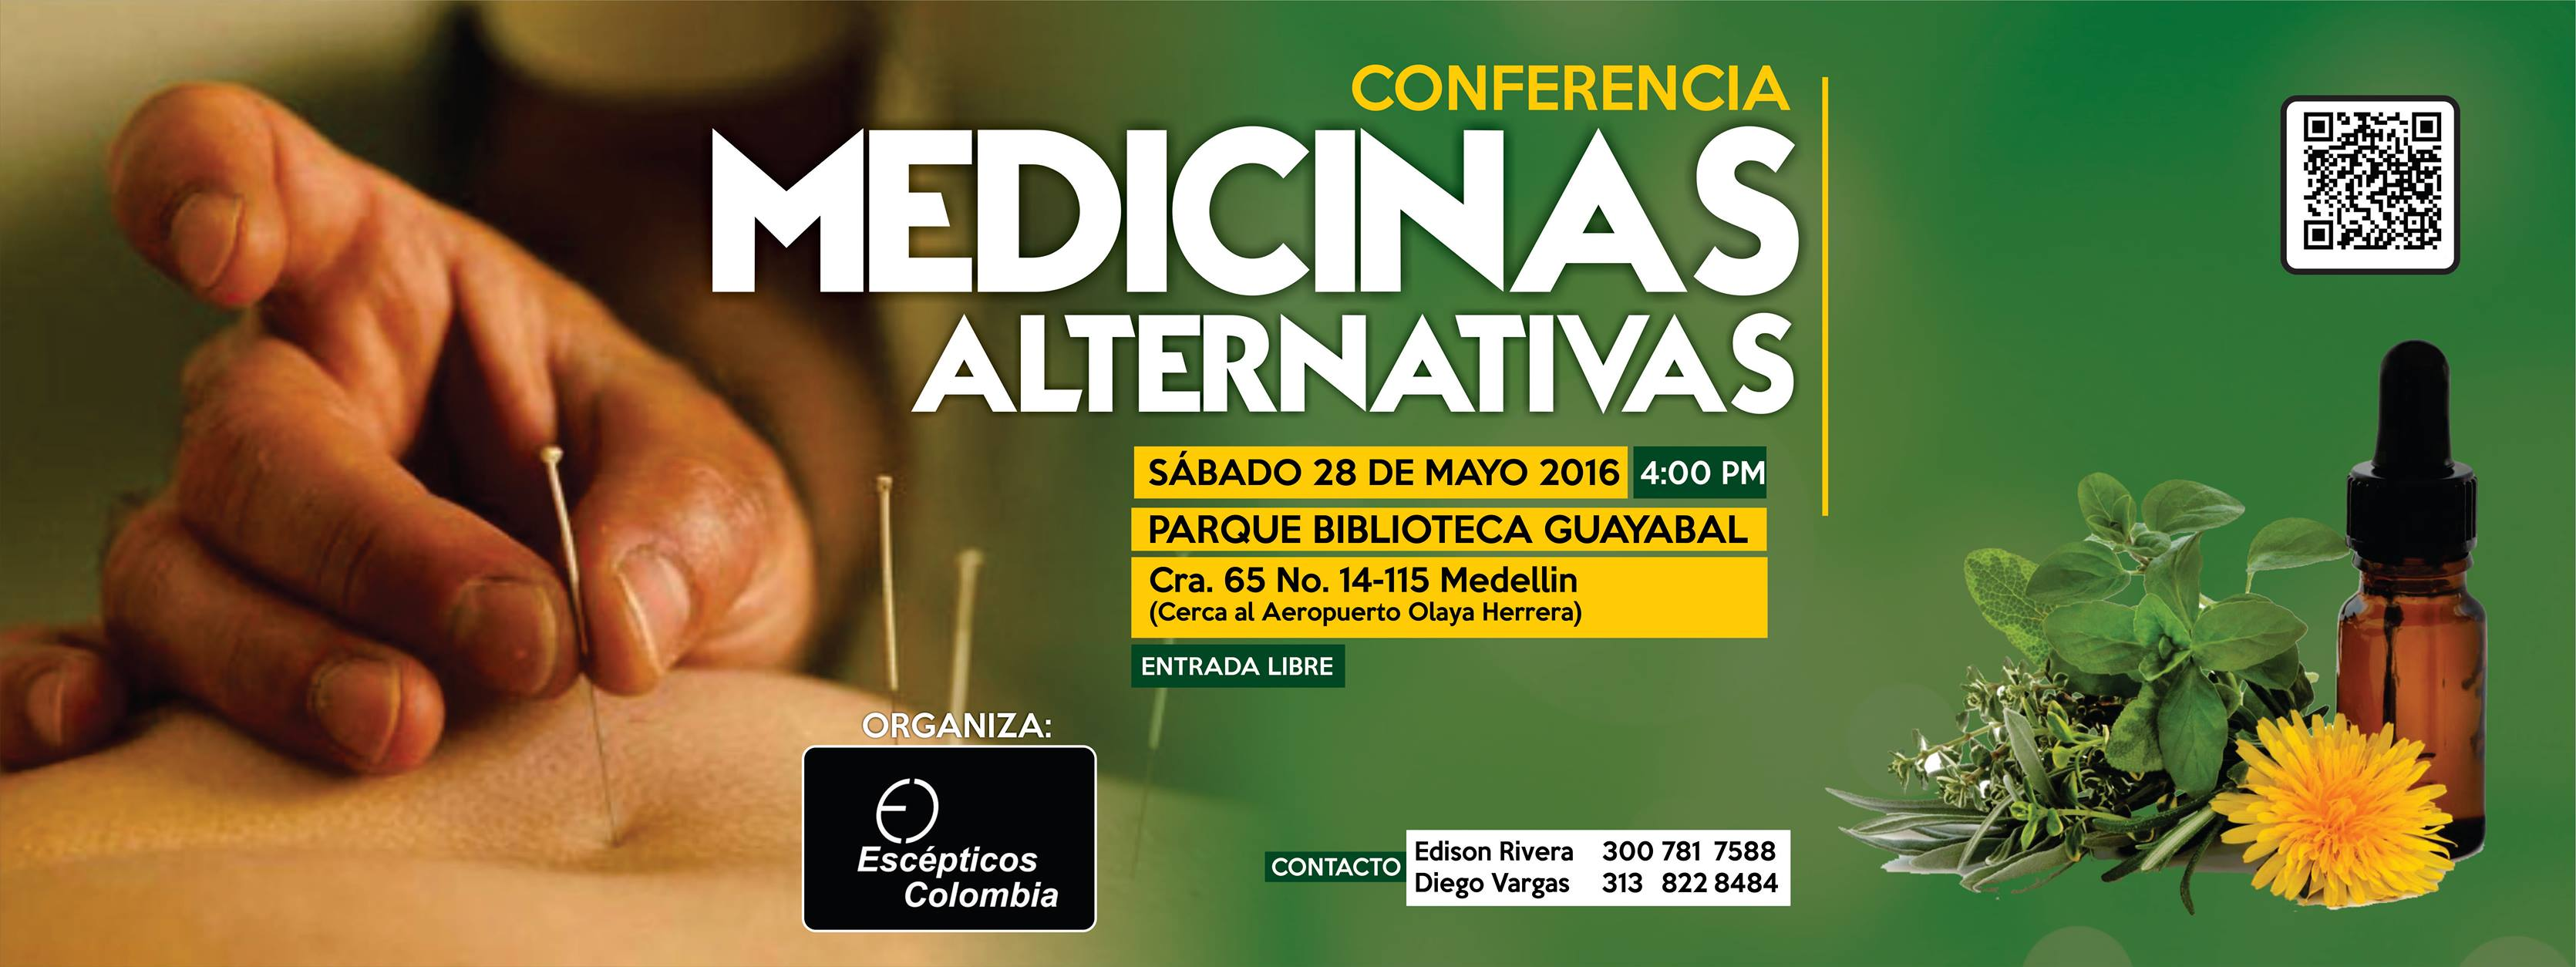 medicinas-alternativas-escepticos-colomb